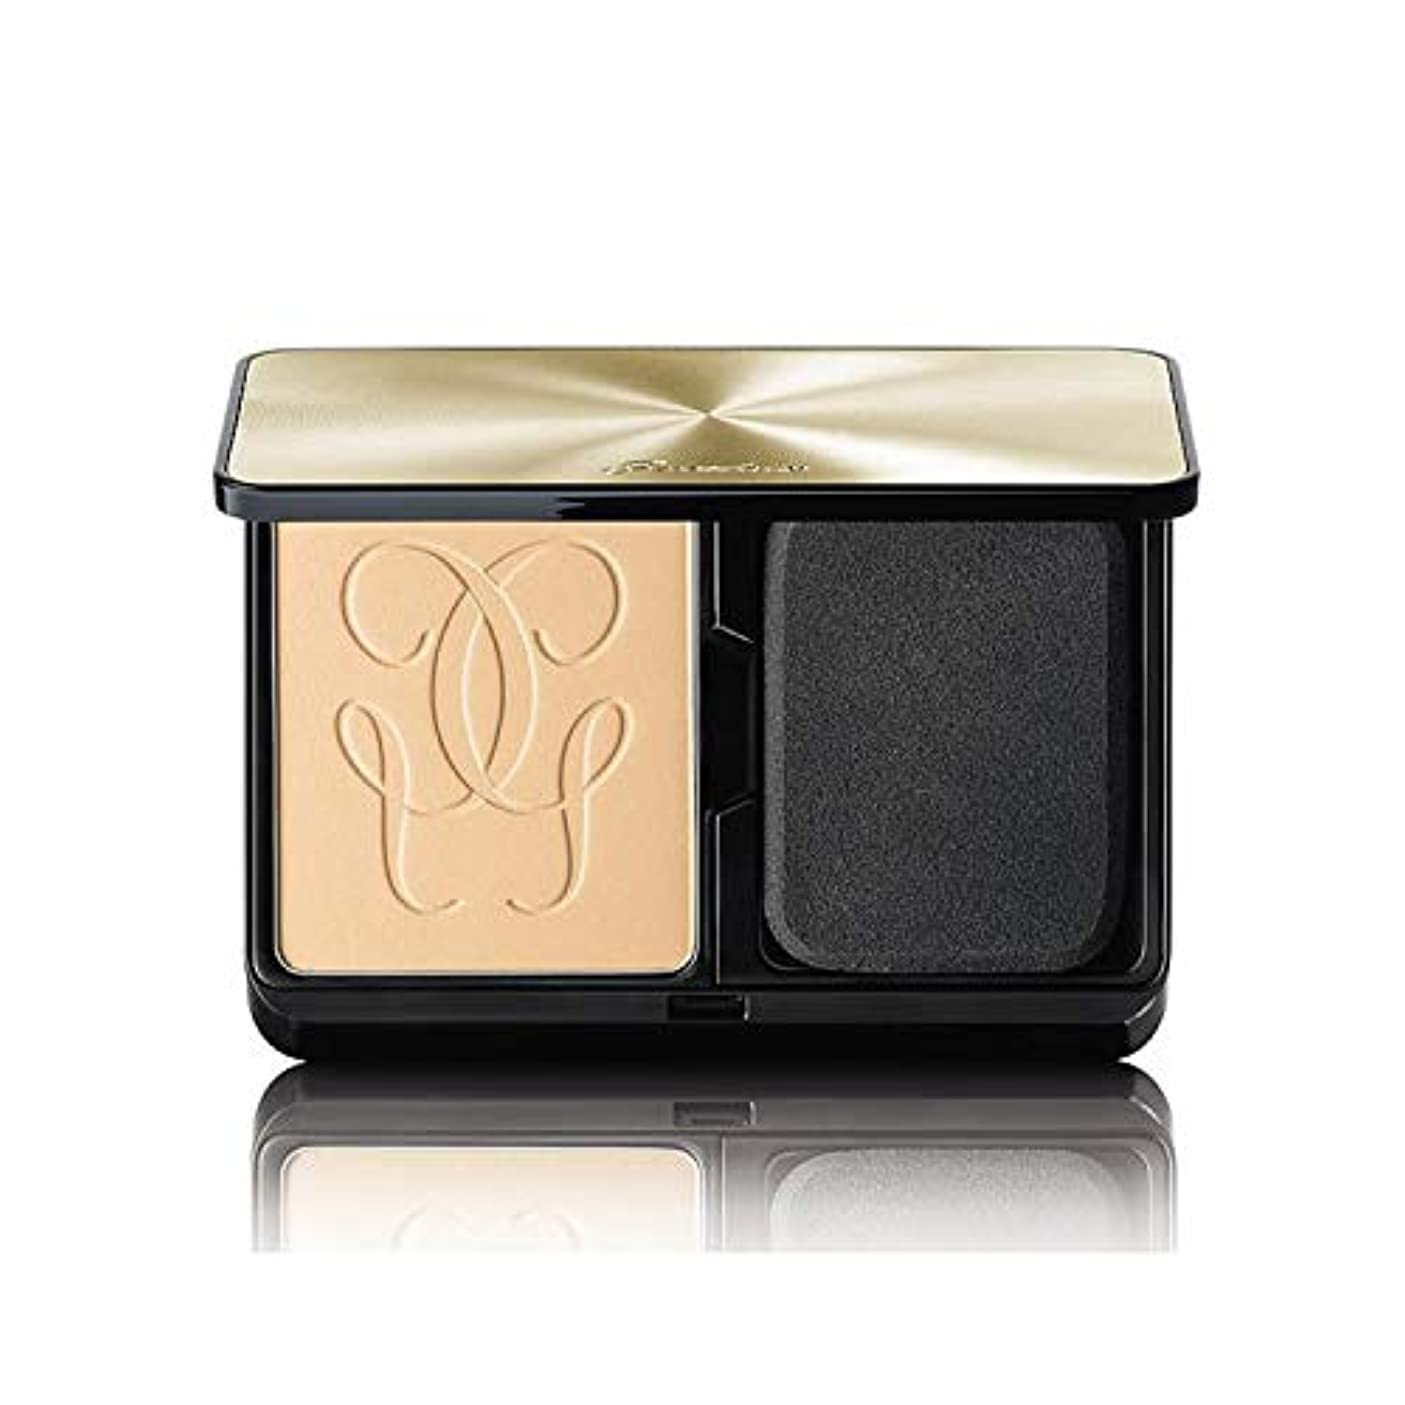 スカープ改善する精緻化ゲラン Lingerie De Peau Mat Alive Buildable Compact Powder Foundation SPF 15 - # 01N Very Light 8.5g/0.29oz並行輸入品